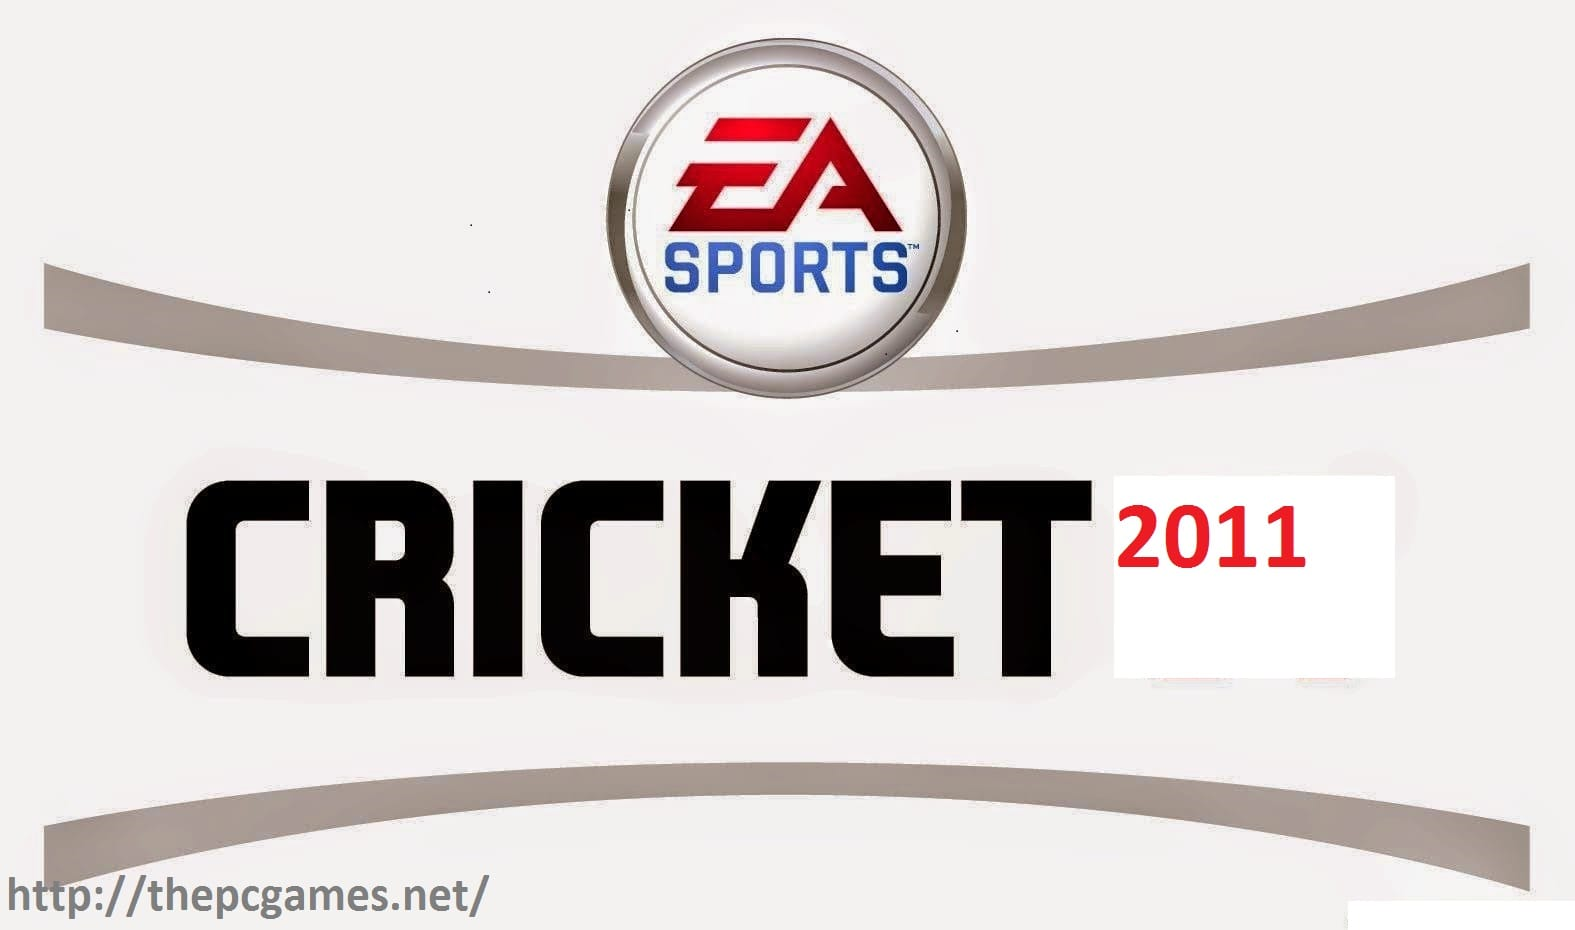 EA SPORTS CRICKET 2011 PC Game Full Version Free Download